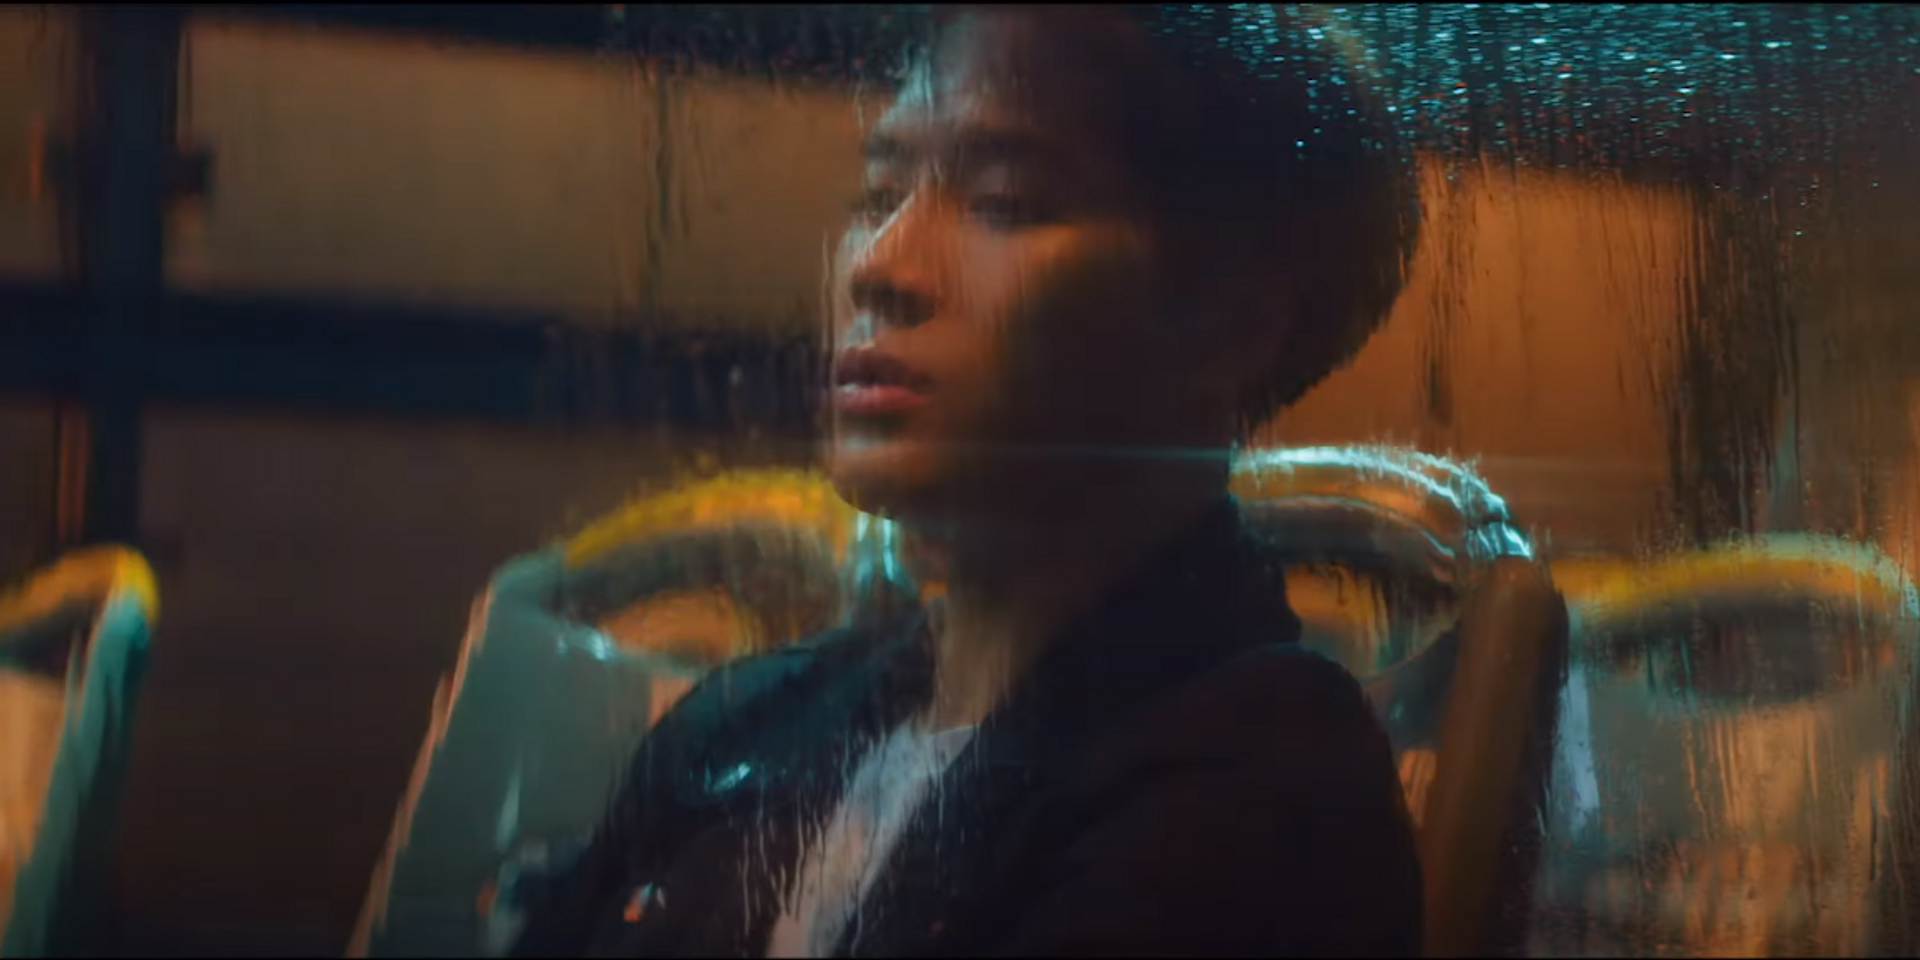 Jackson Wang drops music video for '過 Should've Let Go', featuring JJ Lin - watch